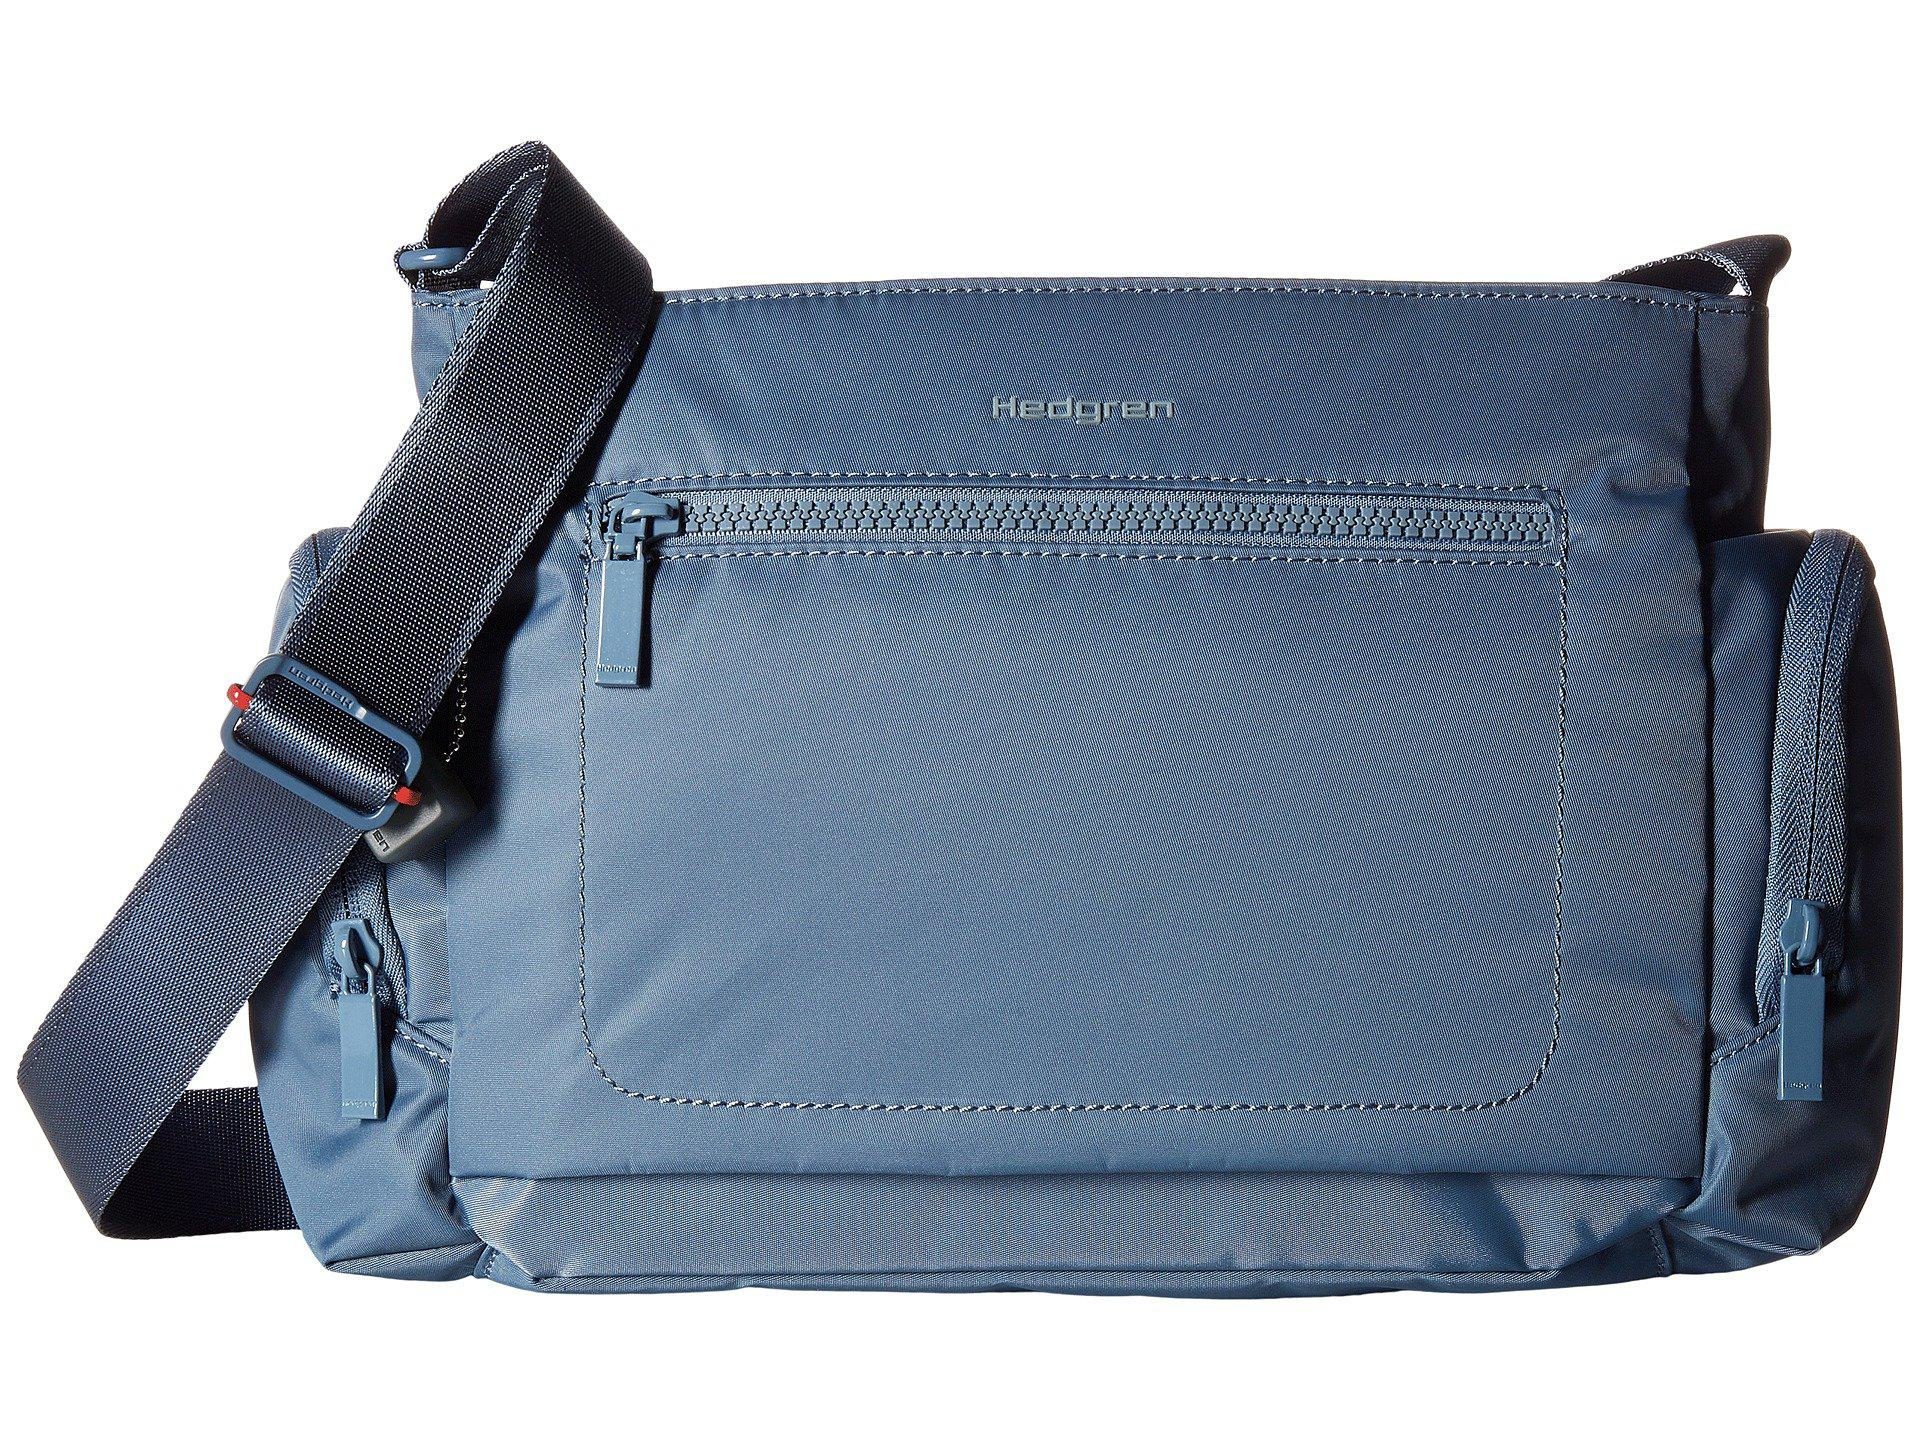 Lyst - Hedgren Commuter Horizontal Crossbody in Blue ca256e4b0cc14